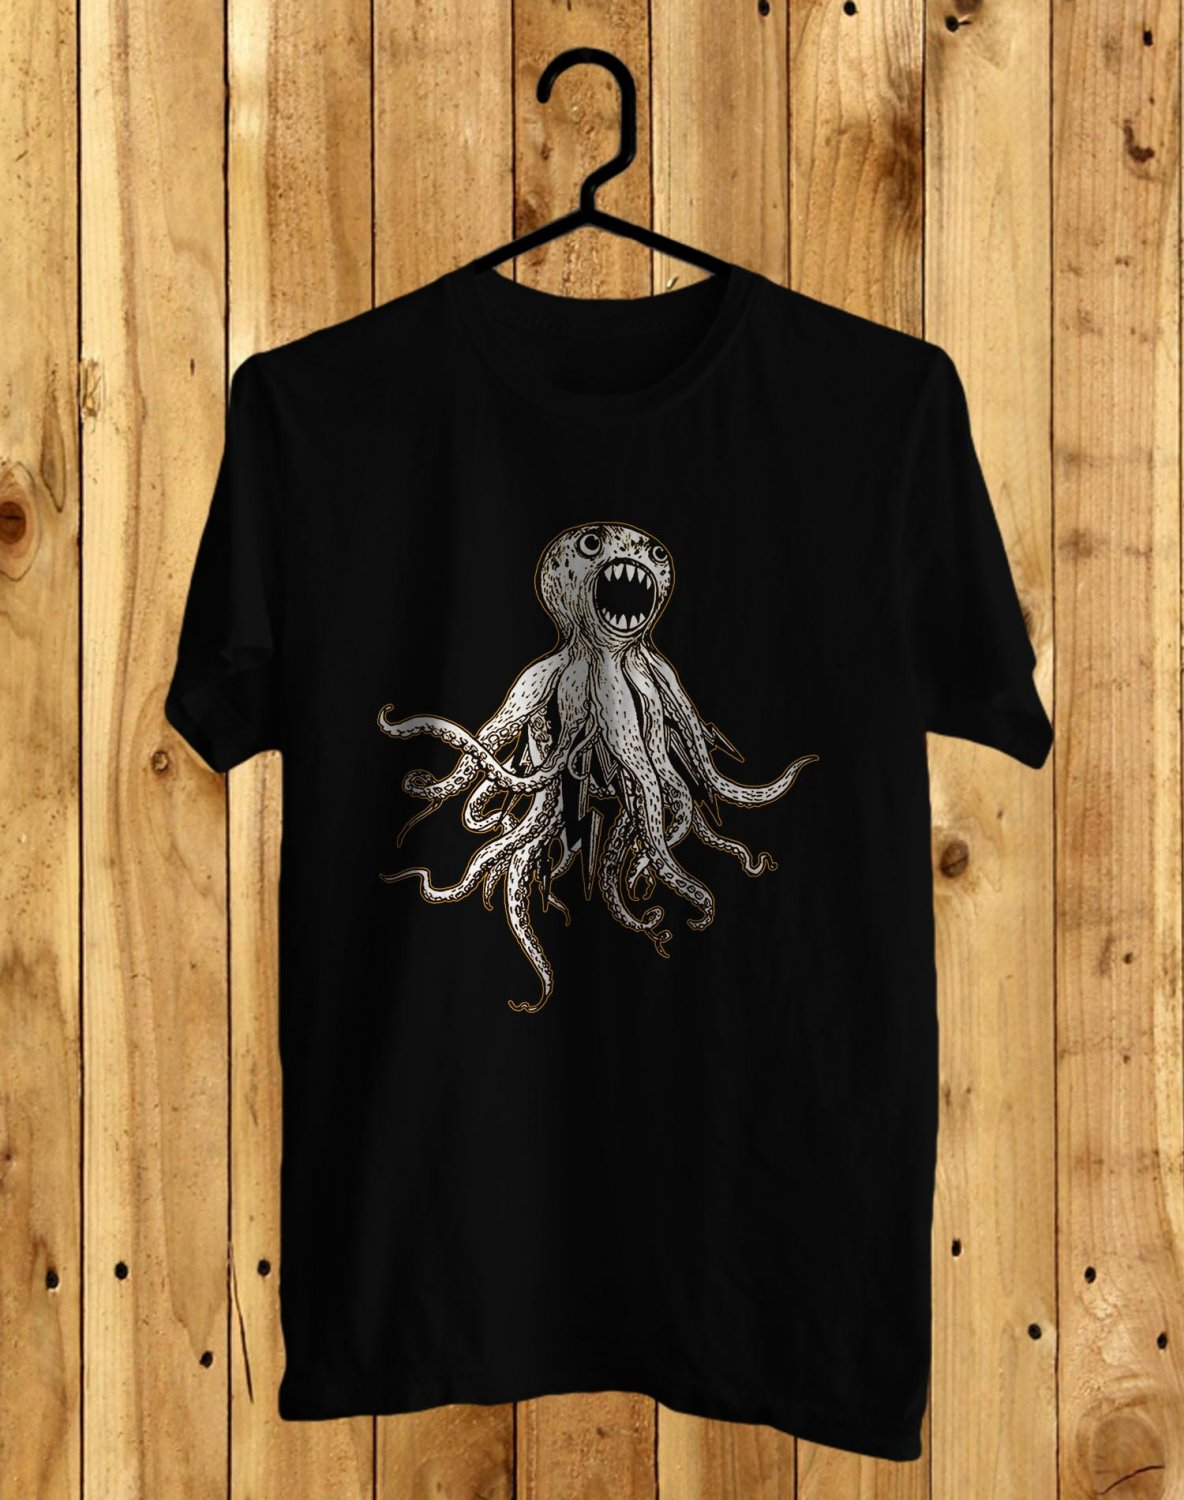 Dirty Heads Art Black Tee's Front Side by Complexart